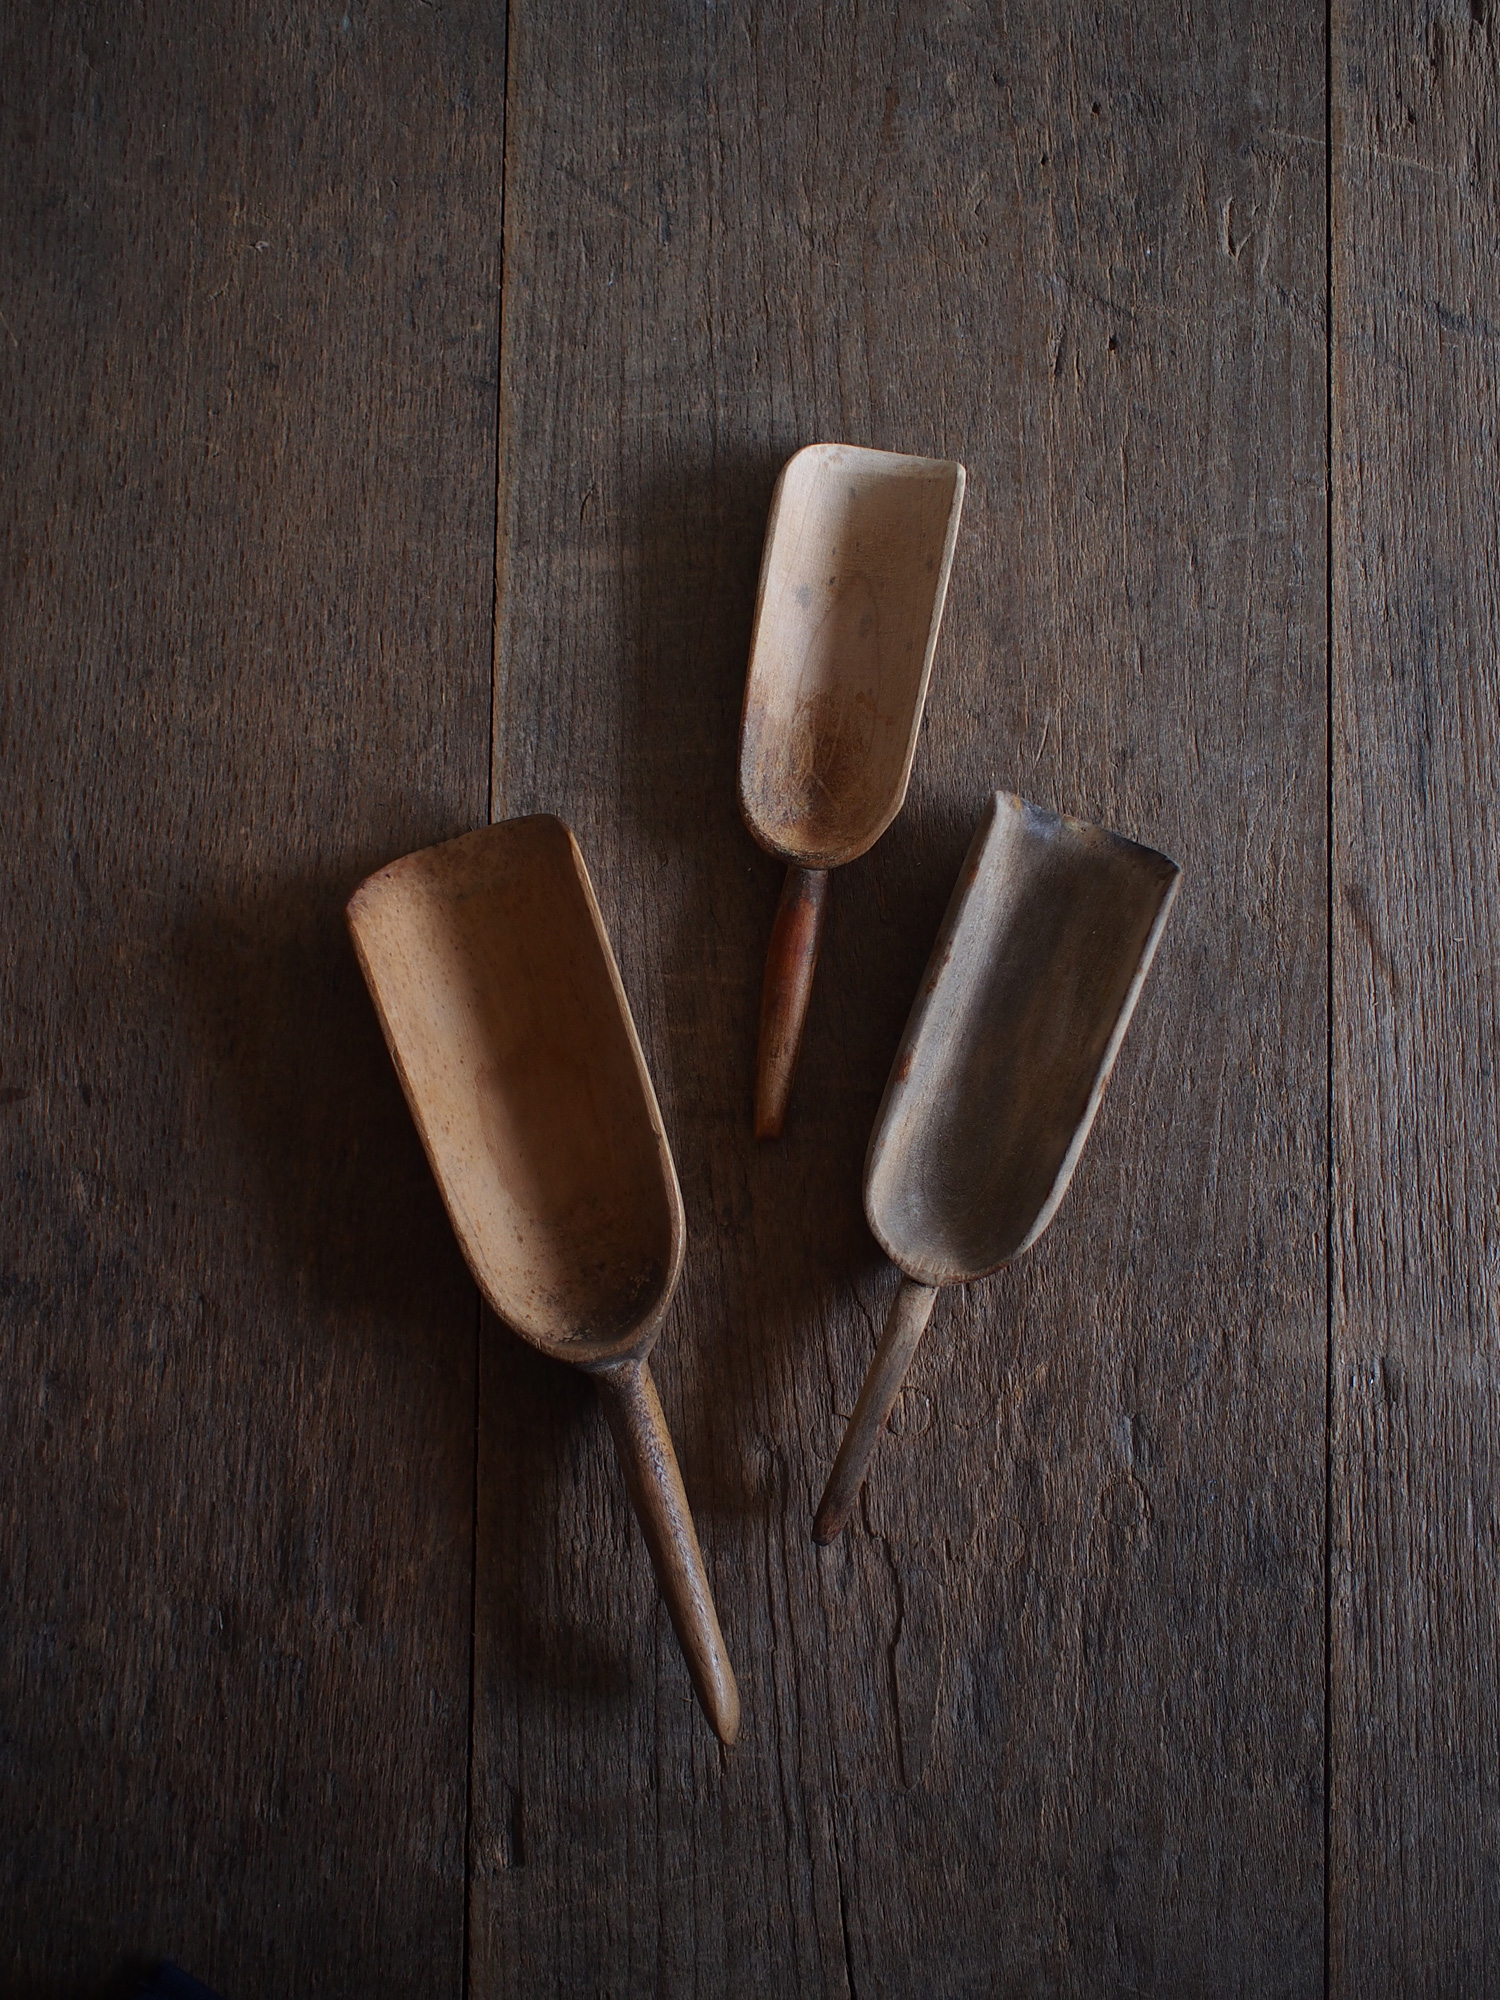 WOOD SCOOP S